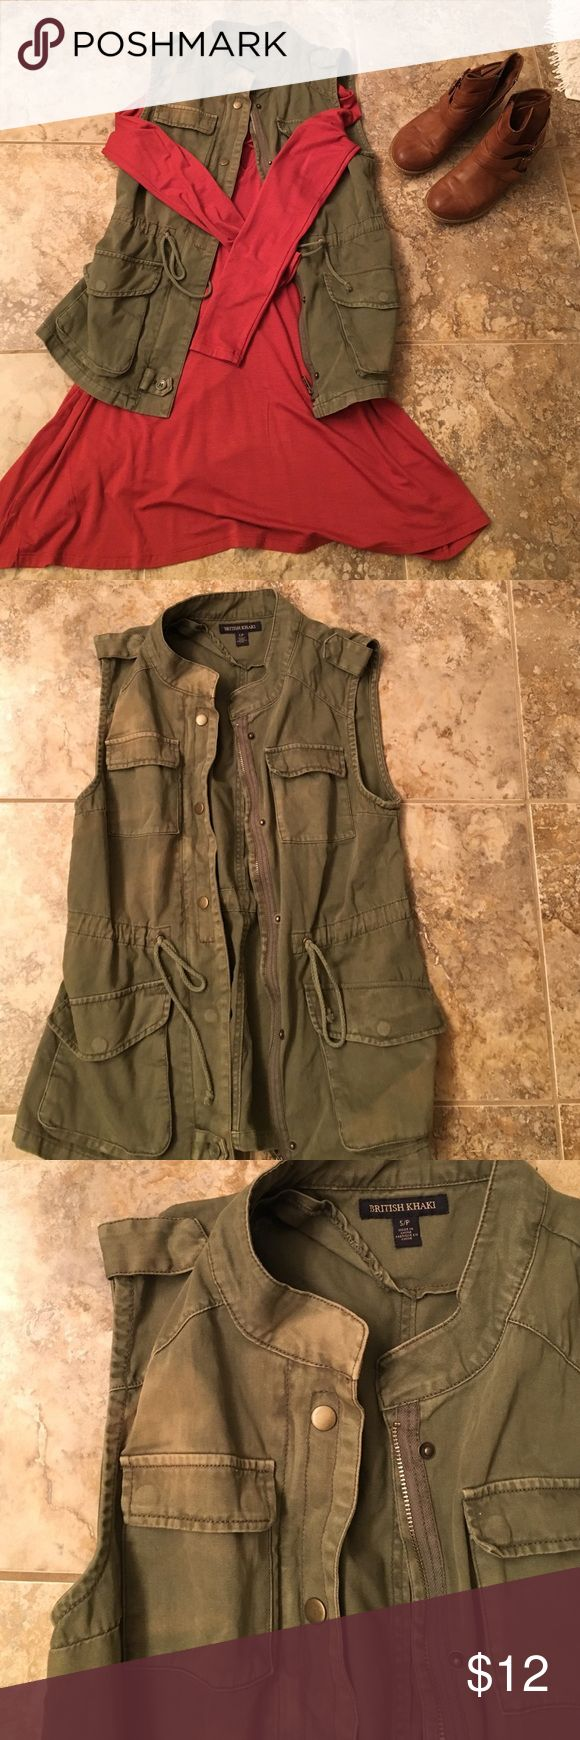 Green utility vest Army inspired utility vest. Falls below the hip. Cute with a dress and booties as pictured or with leggings. Some slight discoloration at the collar--although the vest was worn only a handful of times British Khaki Jackets & Coats Vests